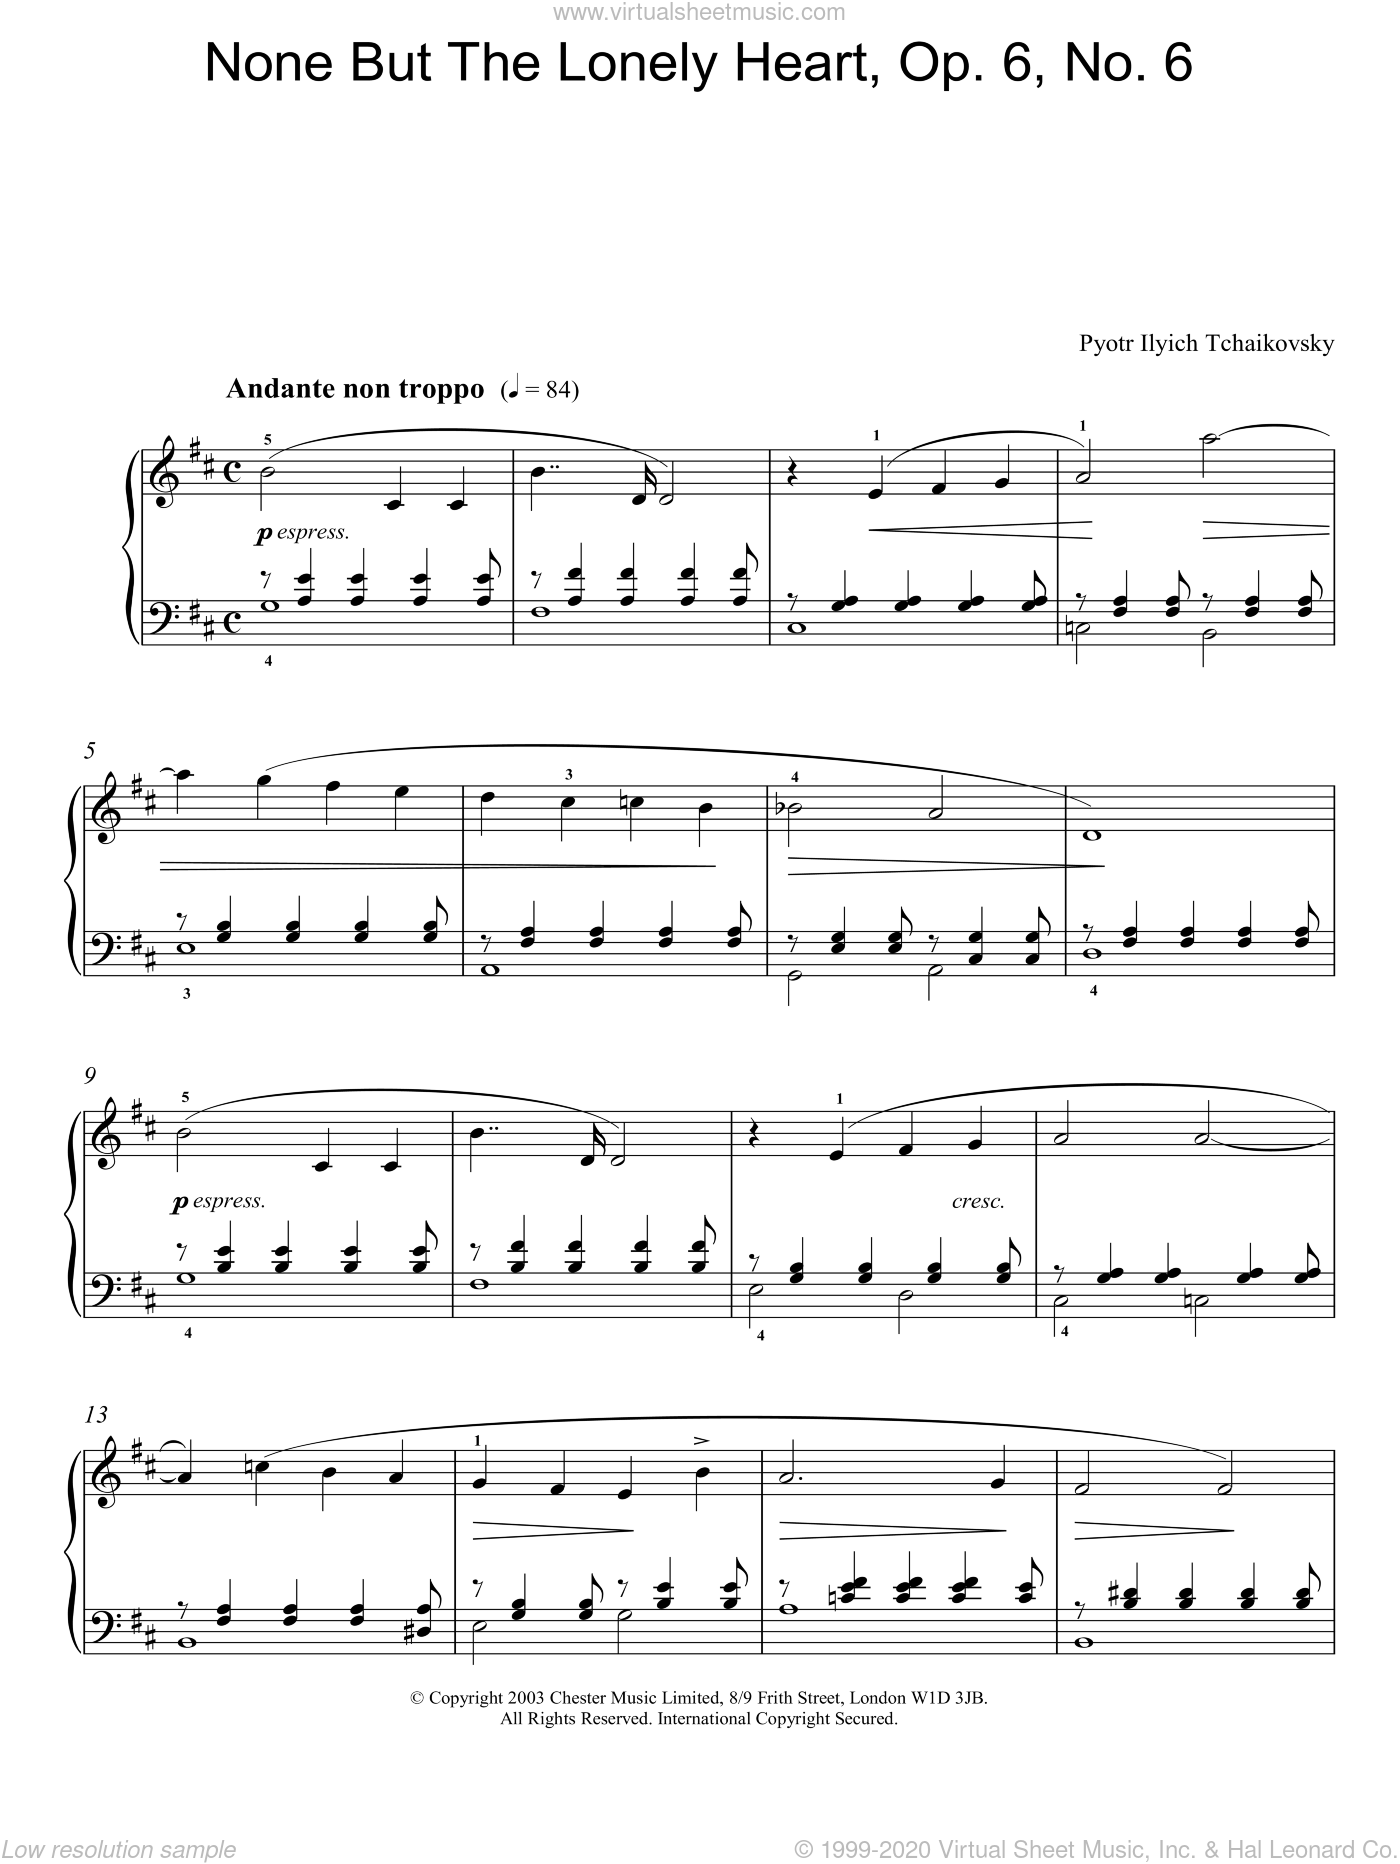 None But The Lonely Heart, Op. 6, No. 6 sheet music for piano solo by Pyotr Ilyich Tchaikovsky